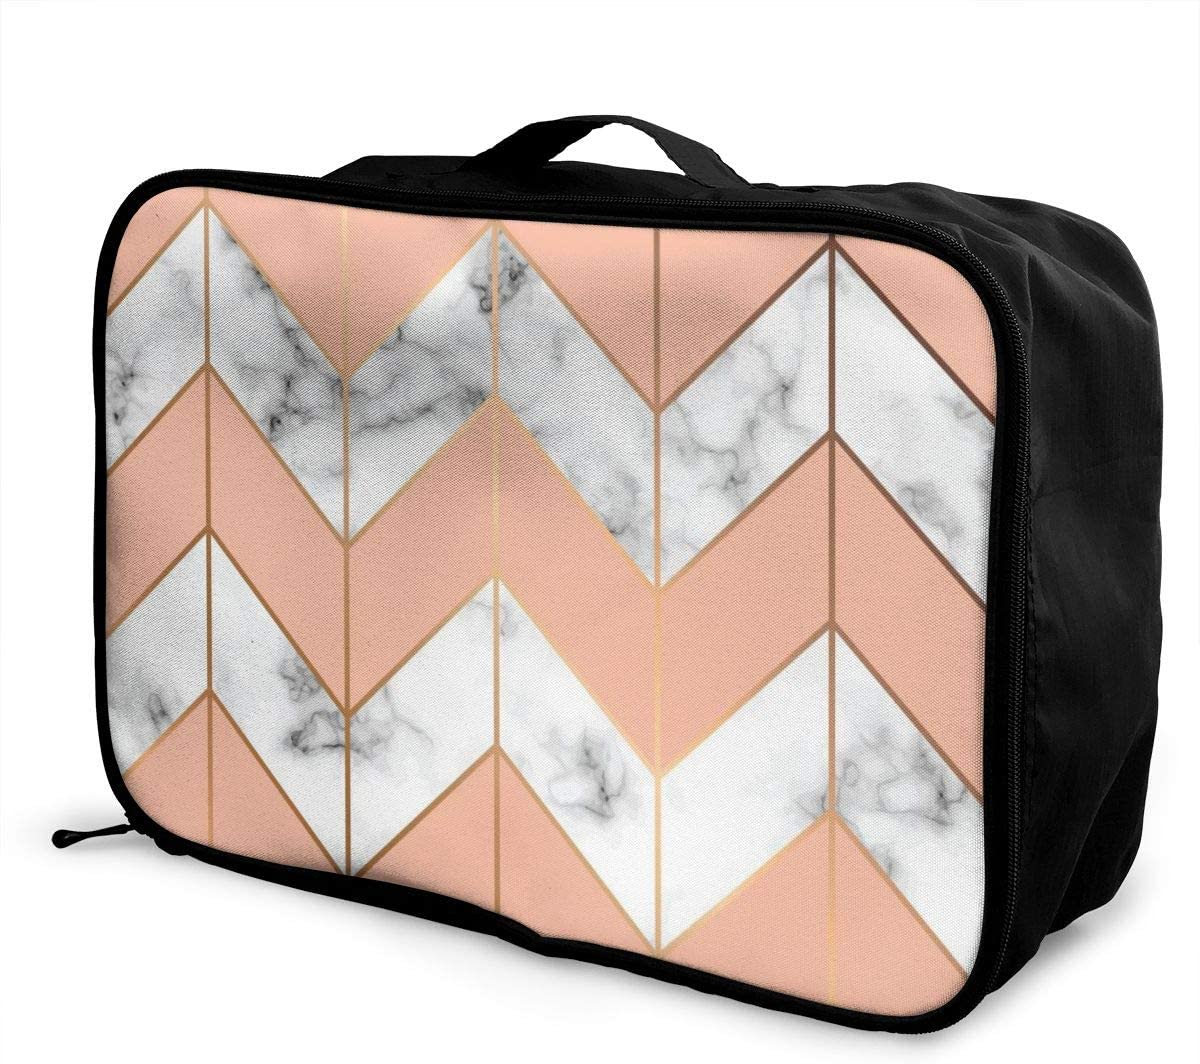 Lightweight LargeTravel Storage Luggage Trolley Bag Travel Duffel Bags Carry-On Tote Marble Texture Golden Geometric Lines